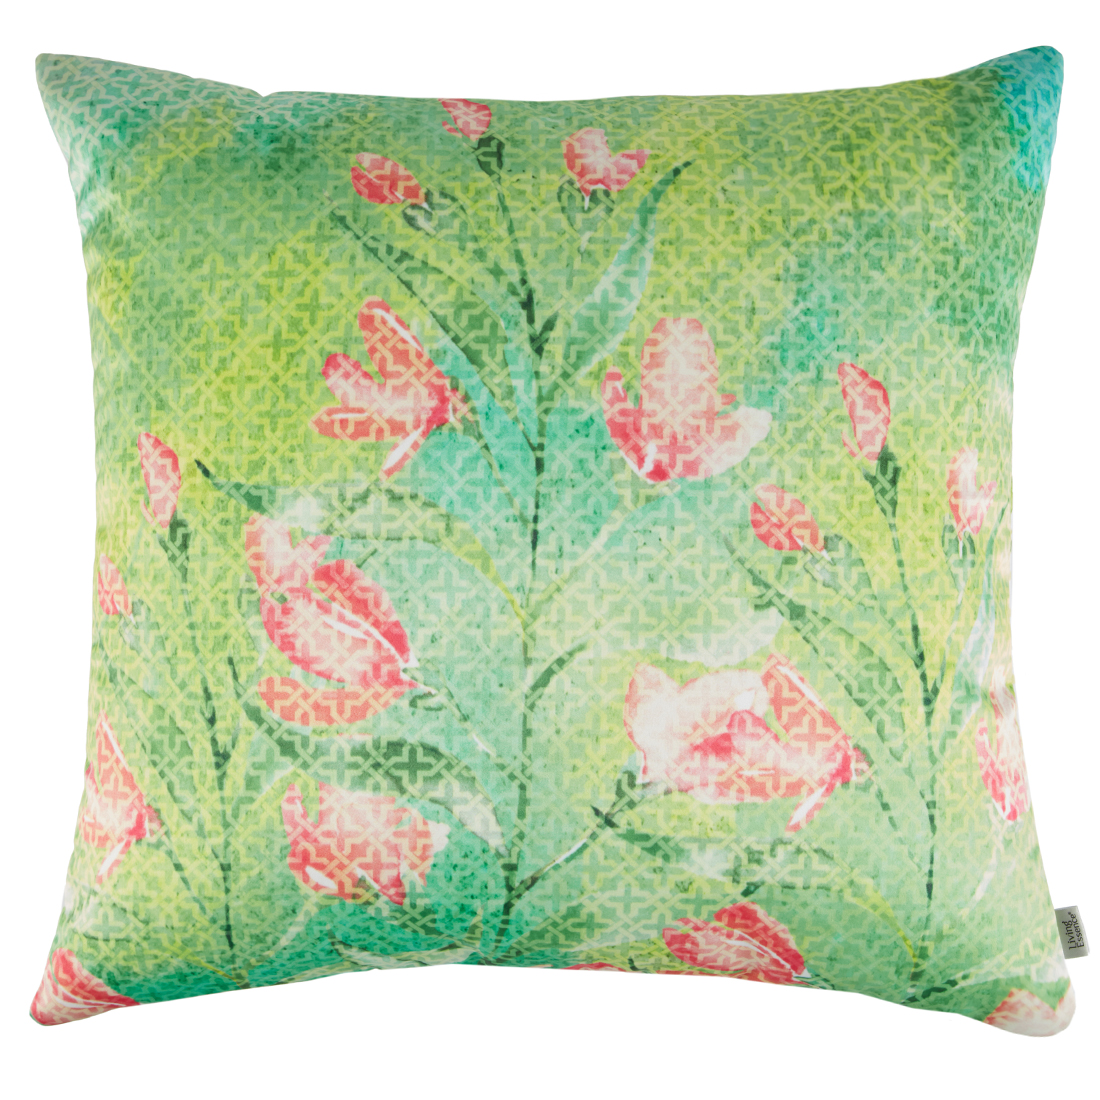 Digital Cushion Cover Green Multi Cushion Covers in Poly Satin Colour by Living Essence